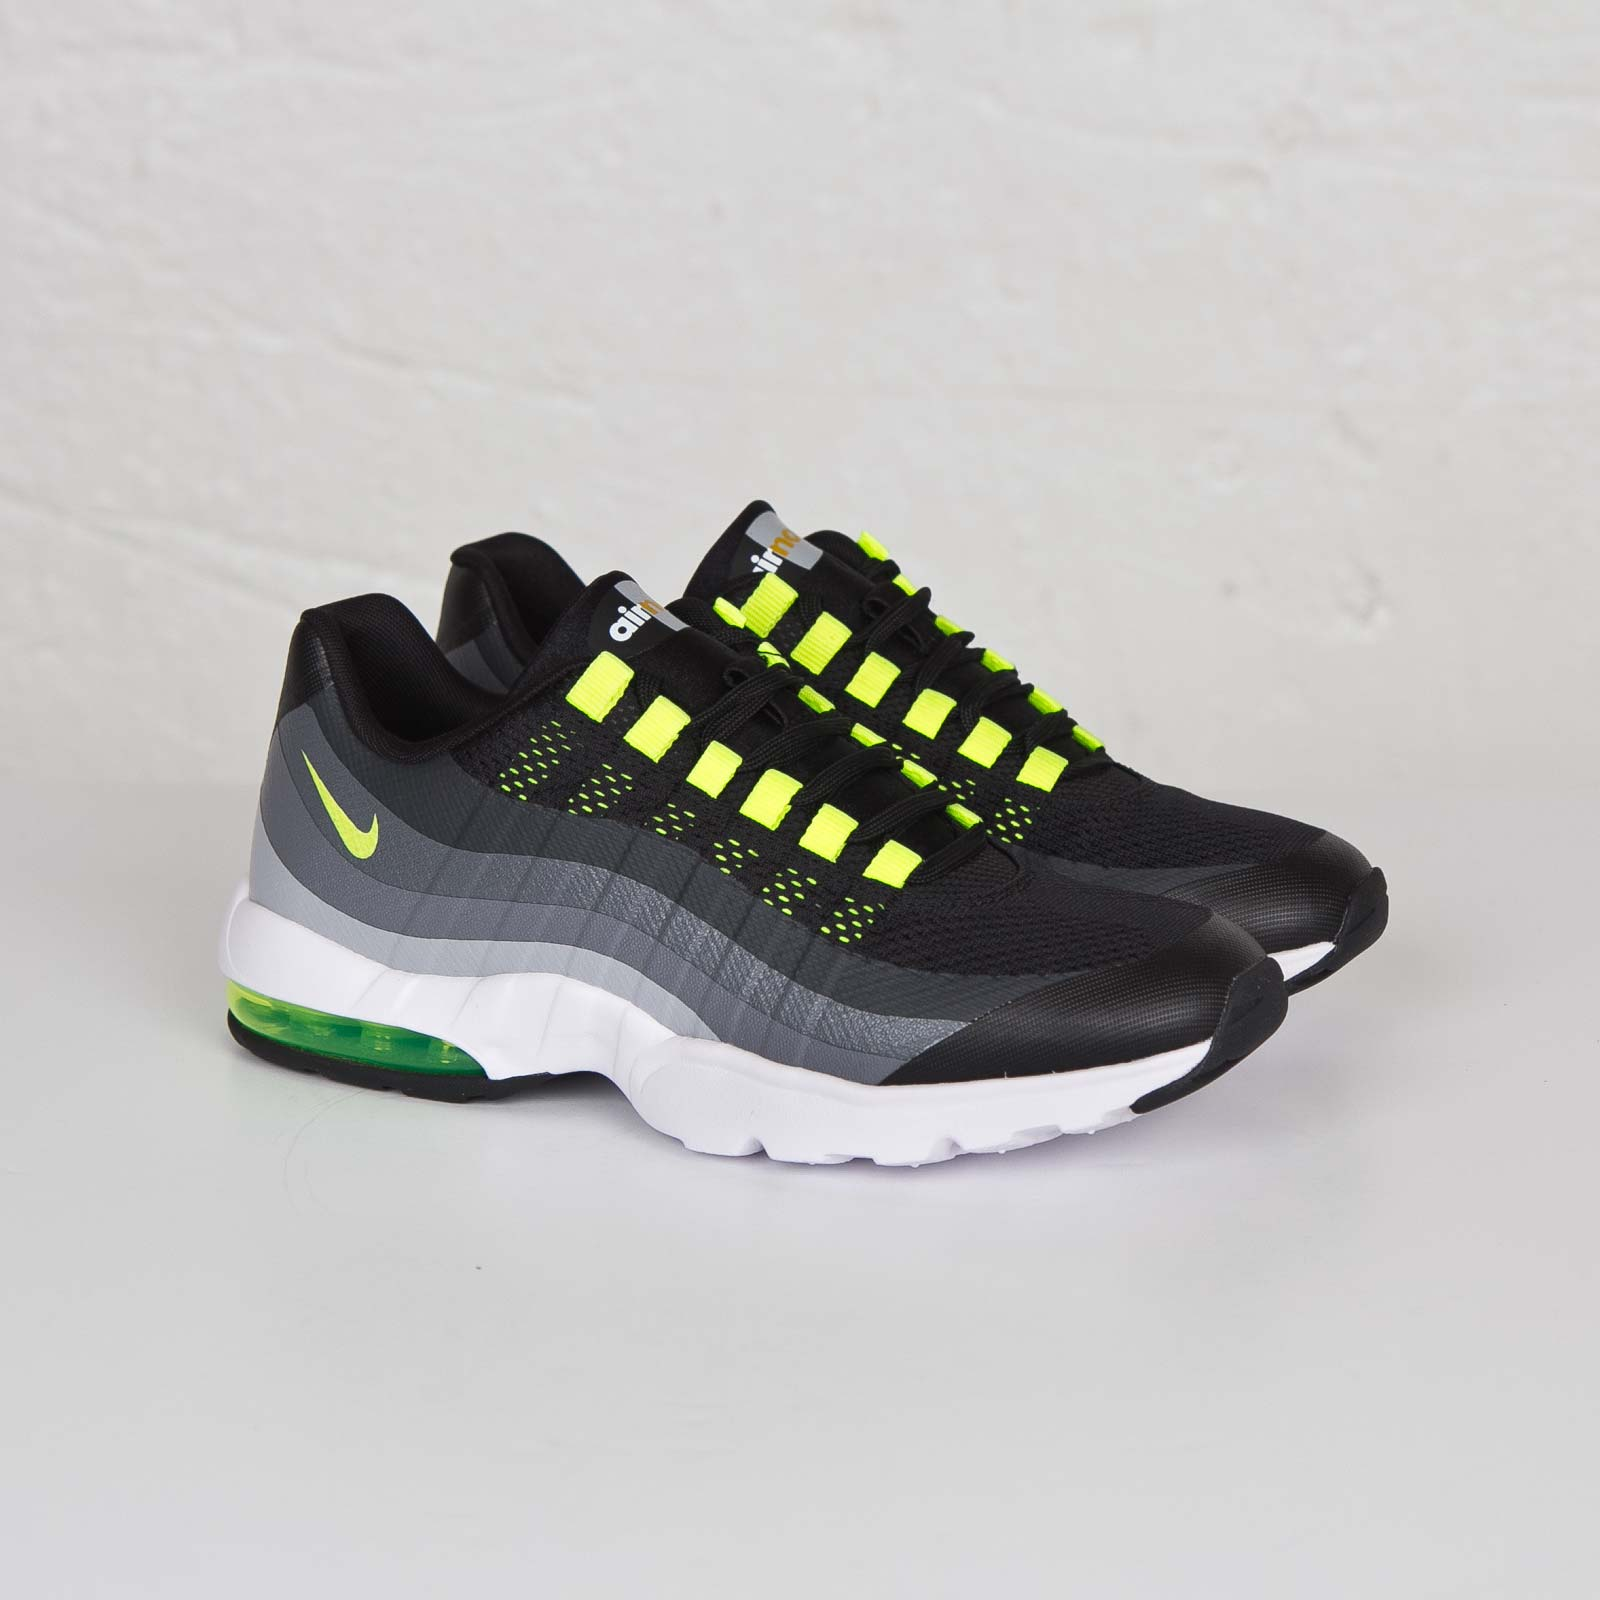 Nike Wmns Air Max 95 Ultra - 749212-002 - SNS | sneakers ...